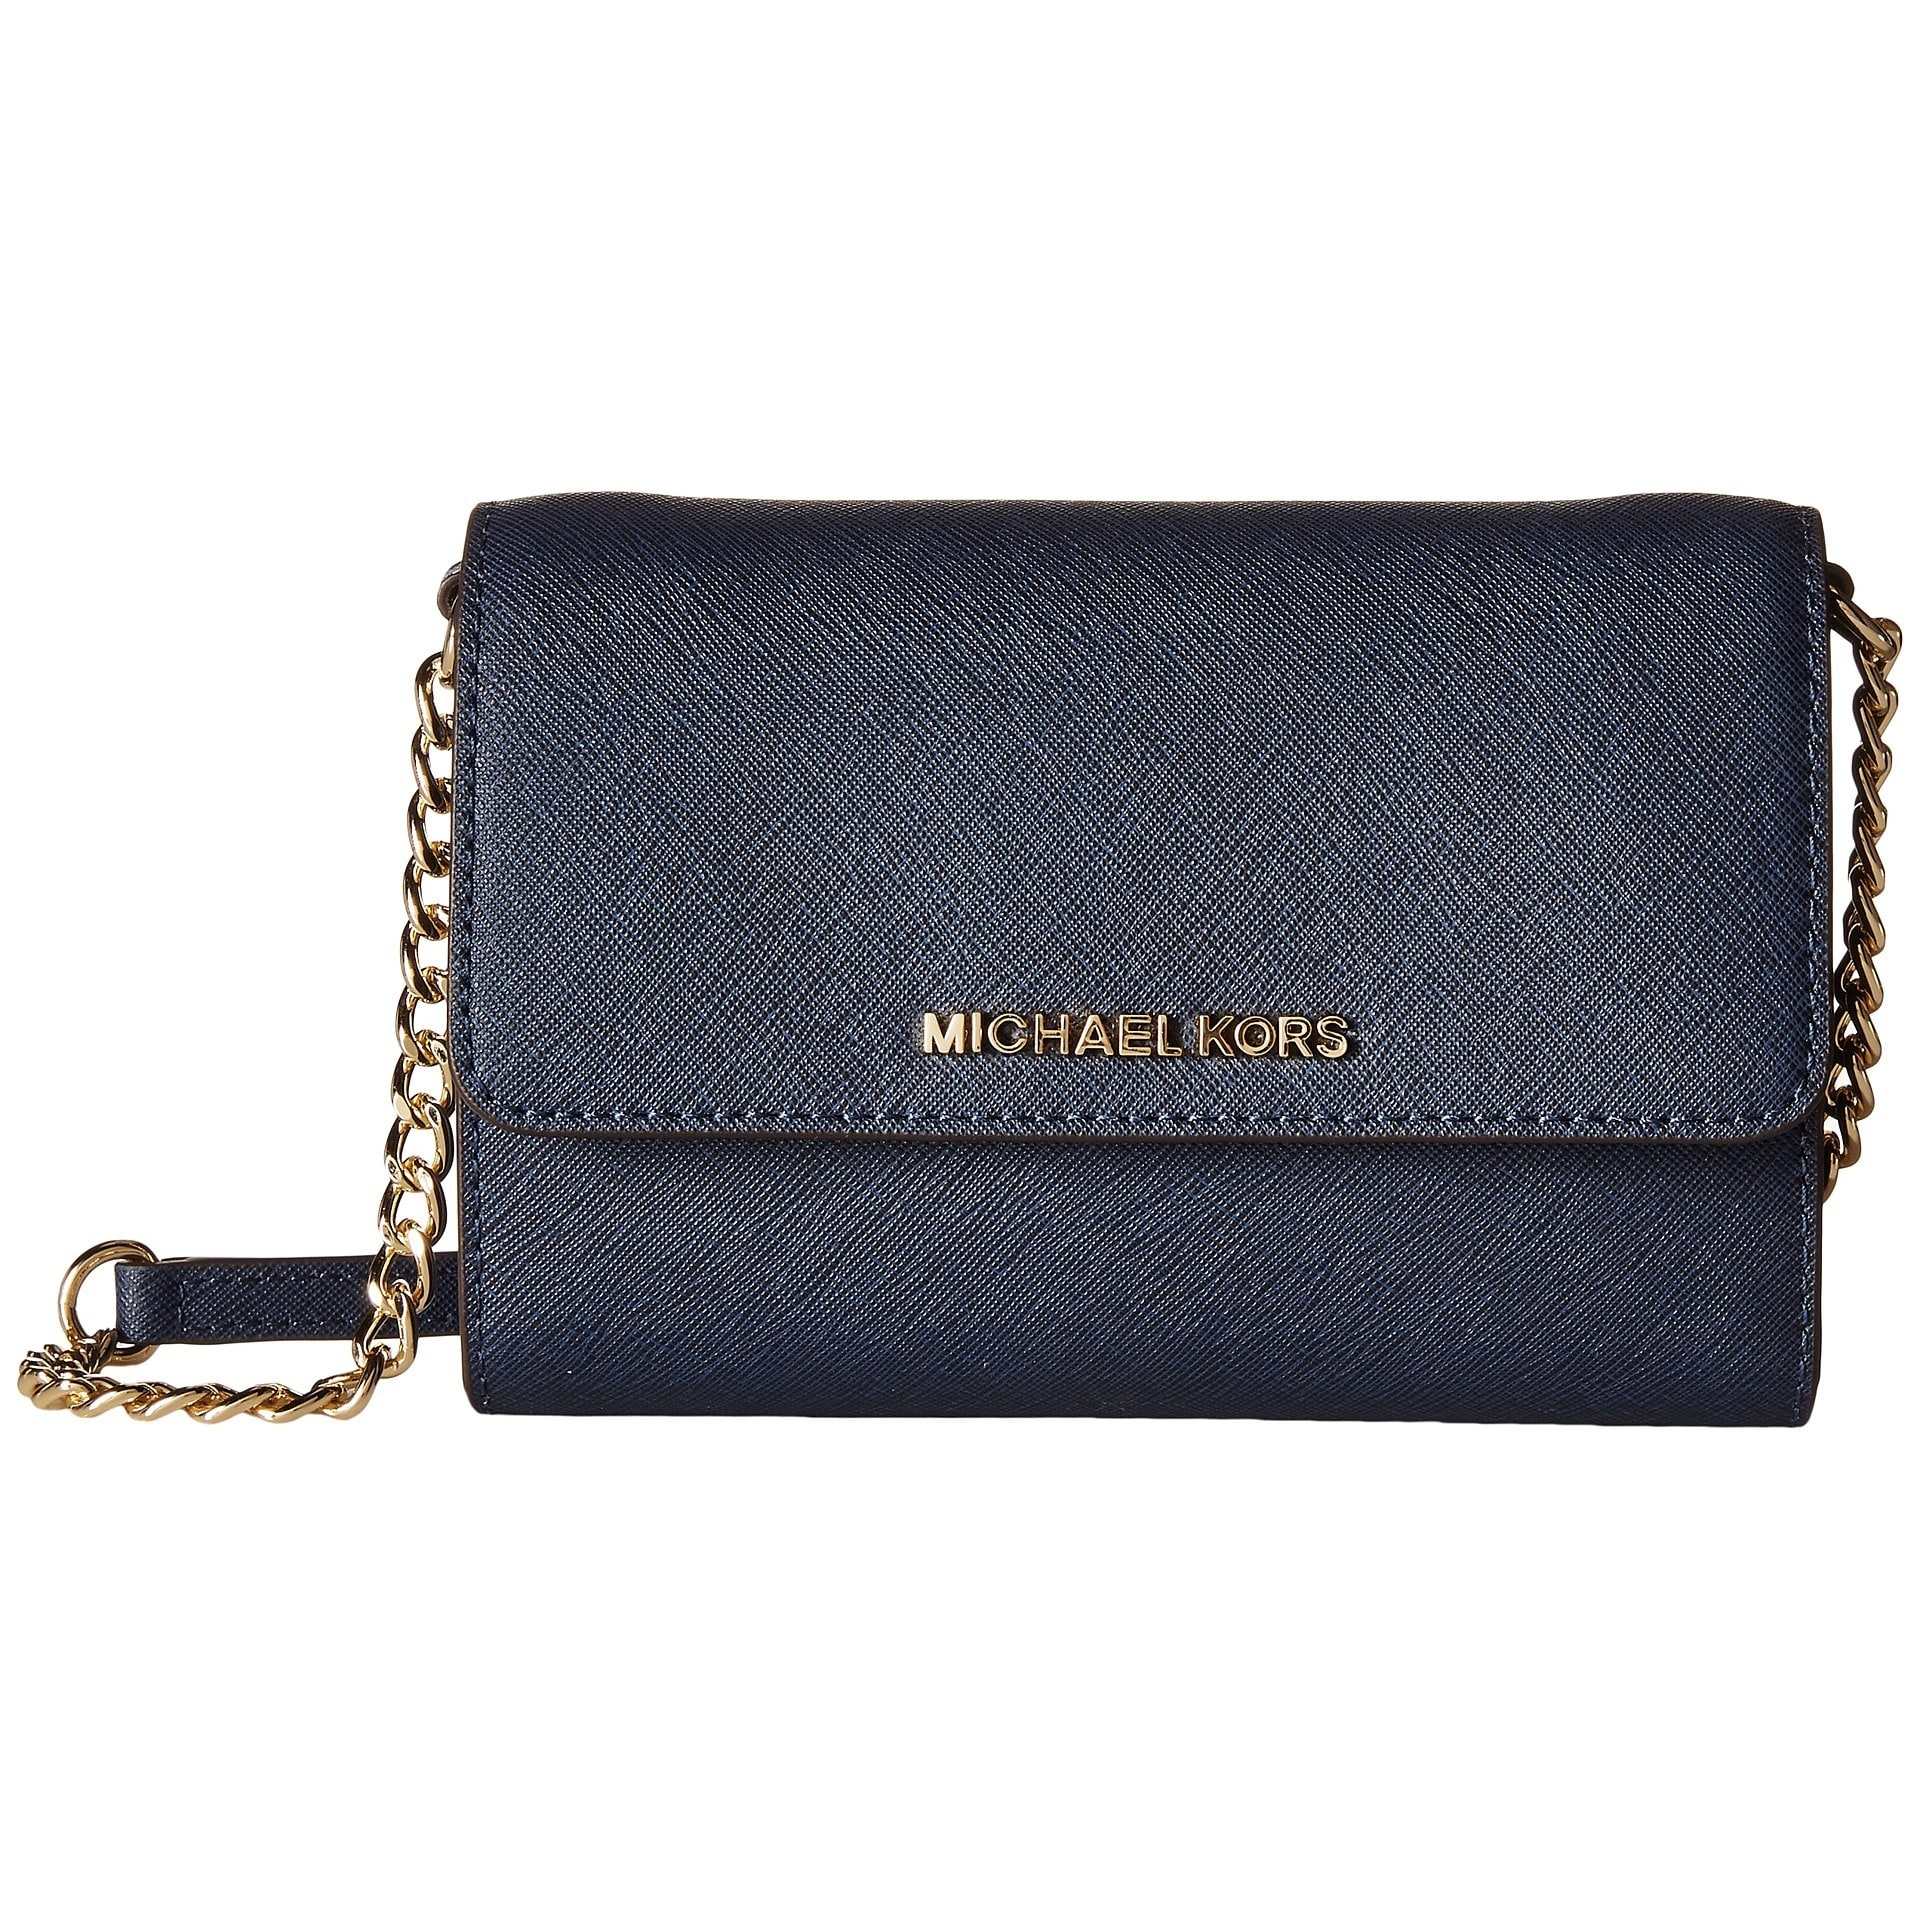 146e143760b07 Shop Michael Kors Jet Set Navy Travel Large Phone Crossbody Handbag ...